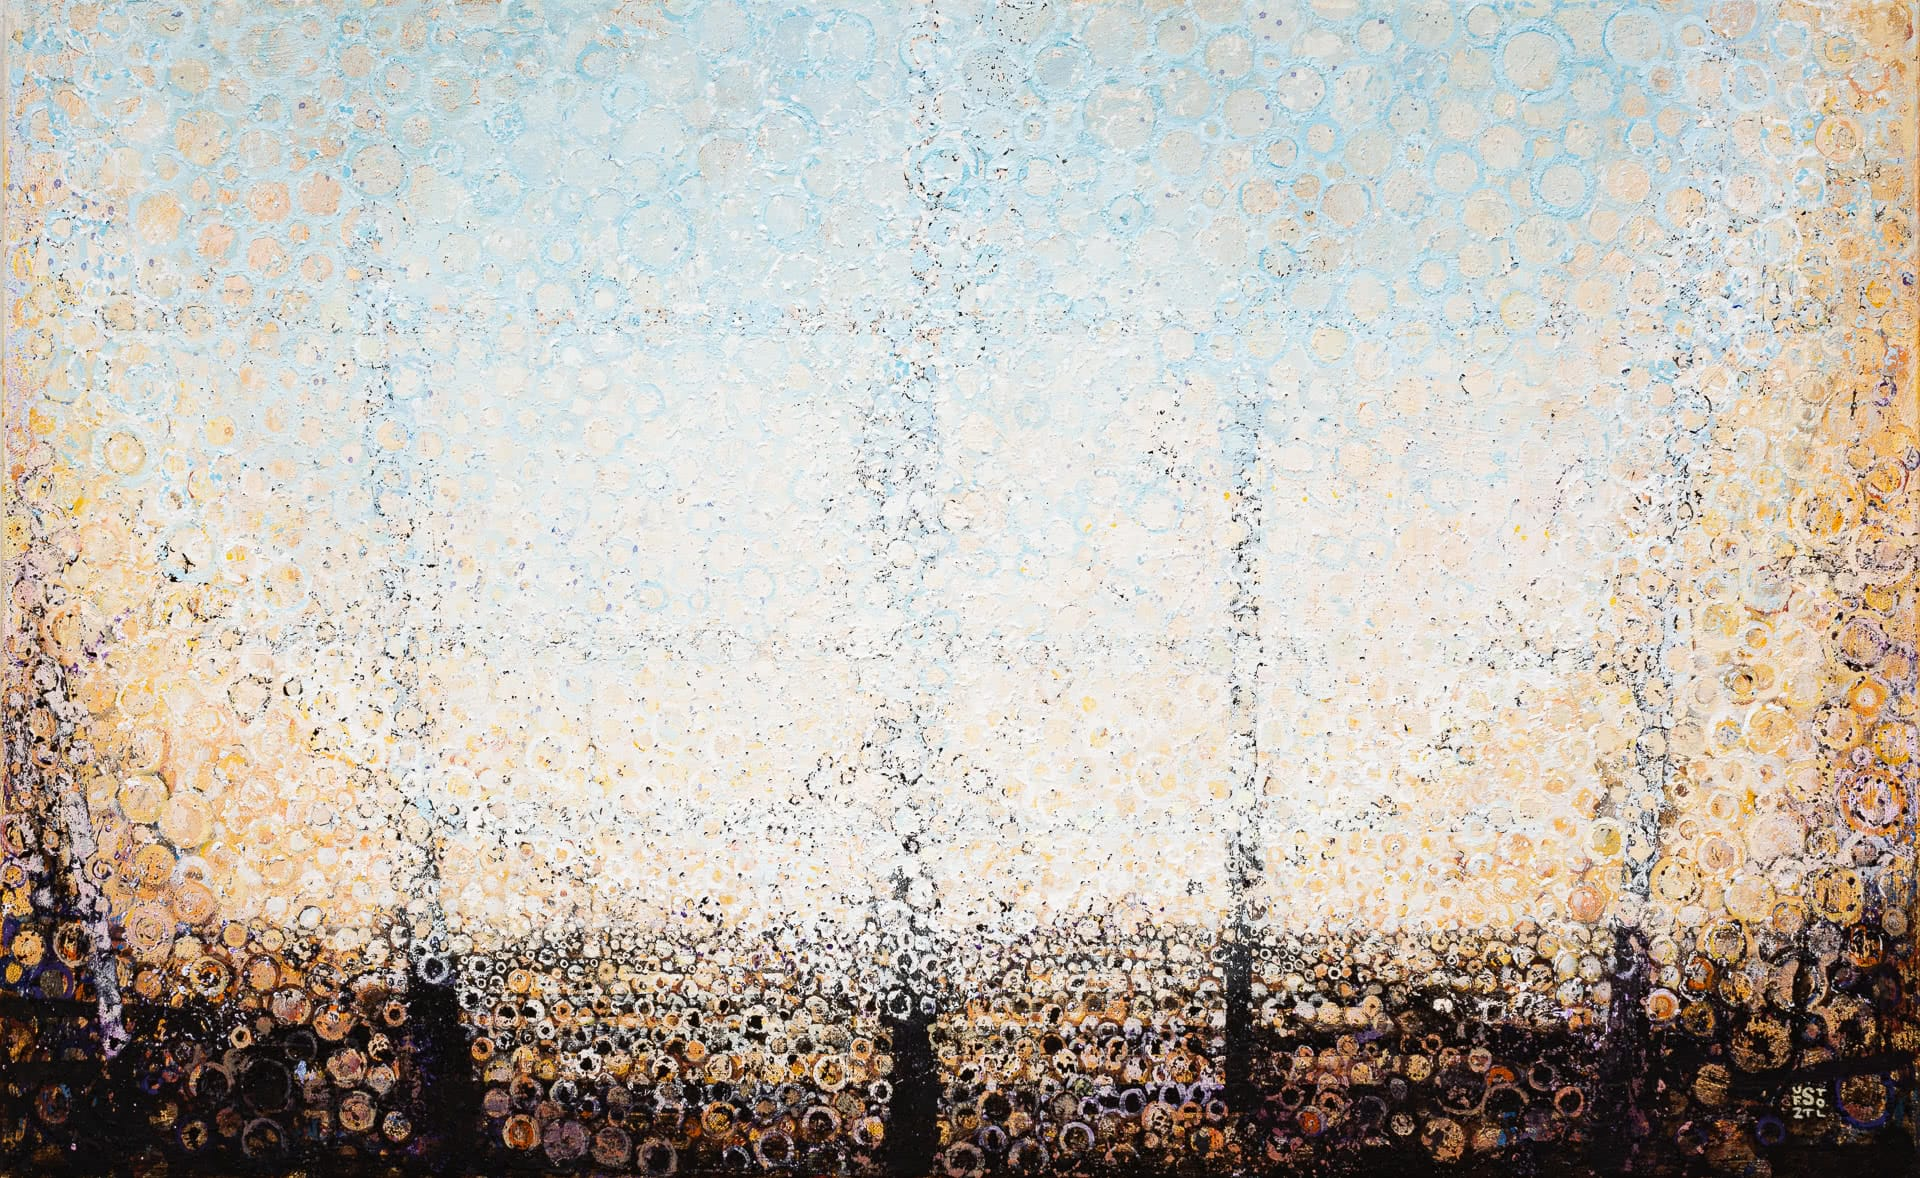 The Feeling of a Wide Open Space | The painting Above by Randall Stoltzfus